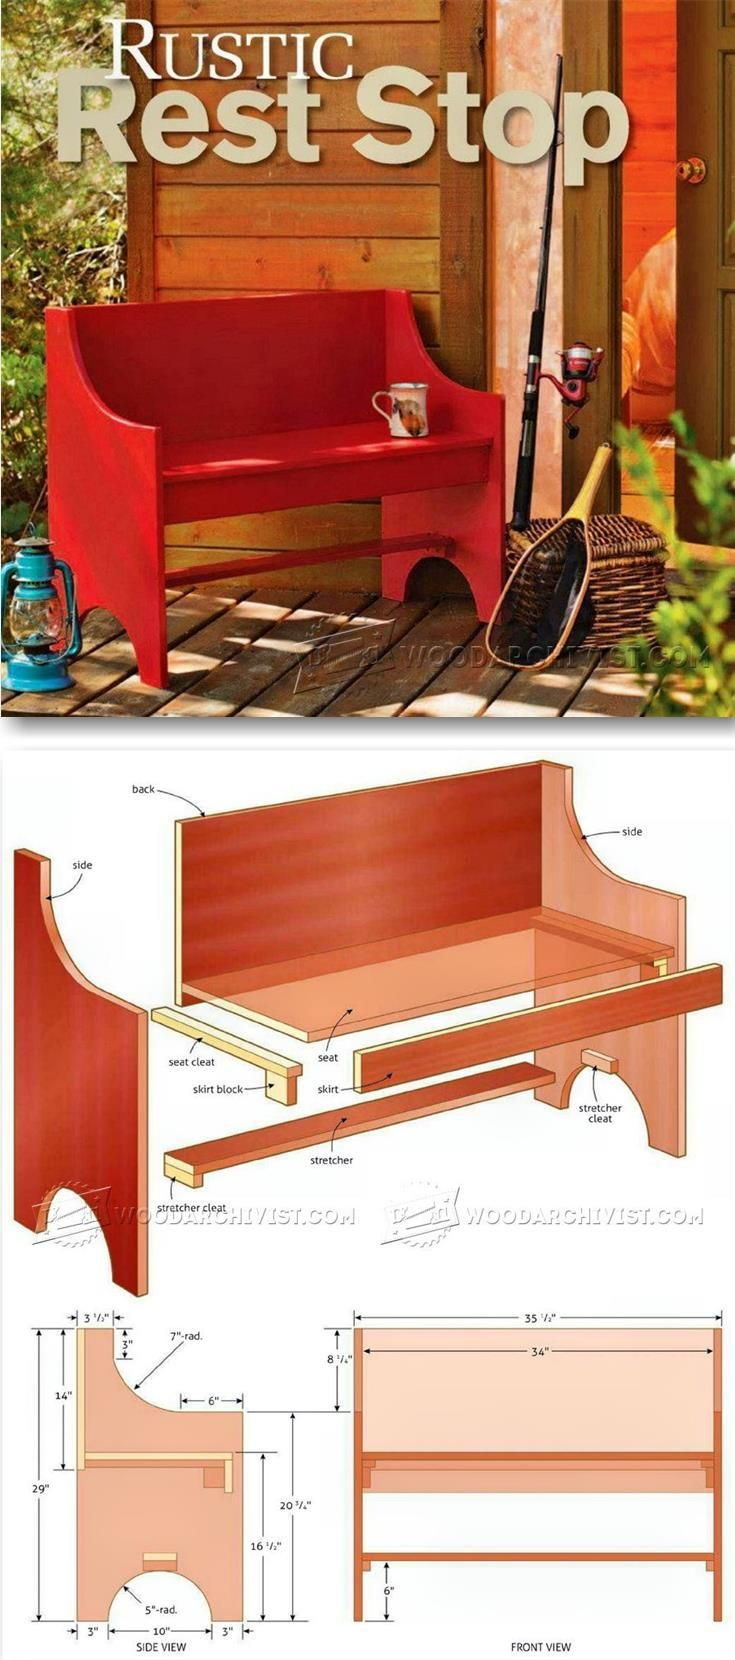 Home gt cedar adirondack wisconsin chairs with personalized laser - Rustic Bench Plans Outdoor Furniture Plans And Projects Woodarchivist Com